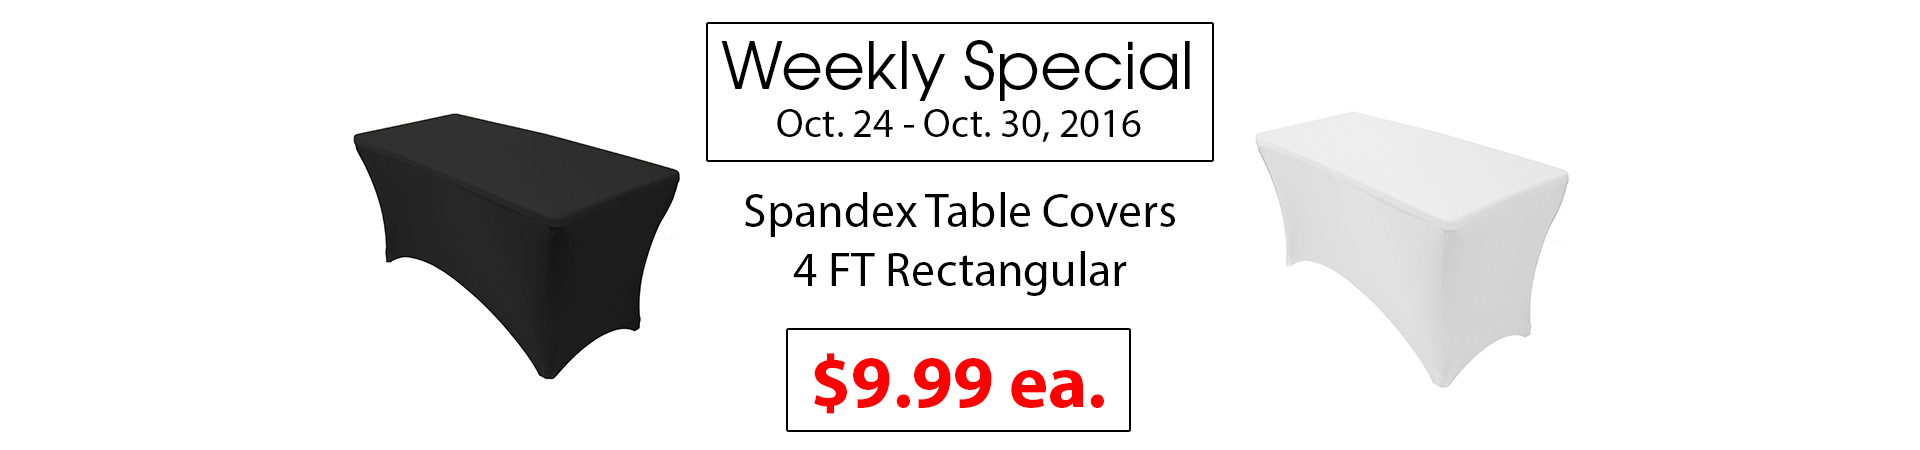 spandex table covers 4ft rectangular